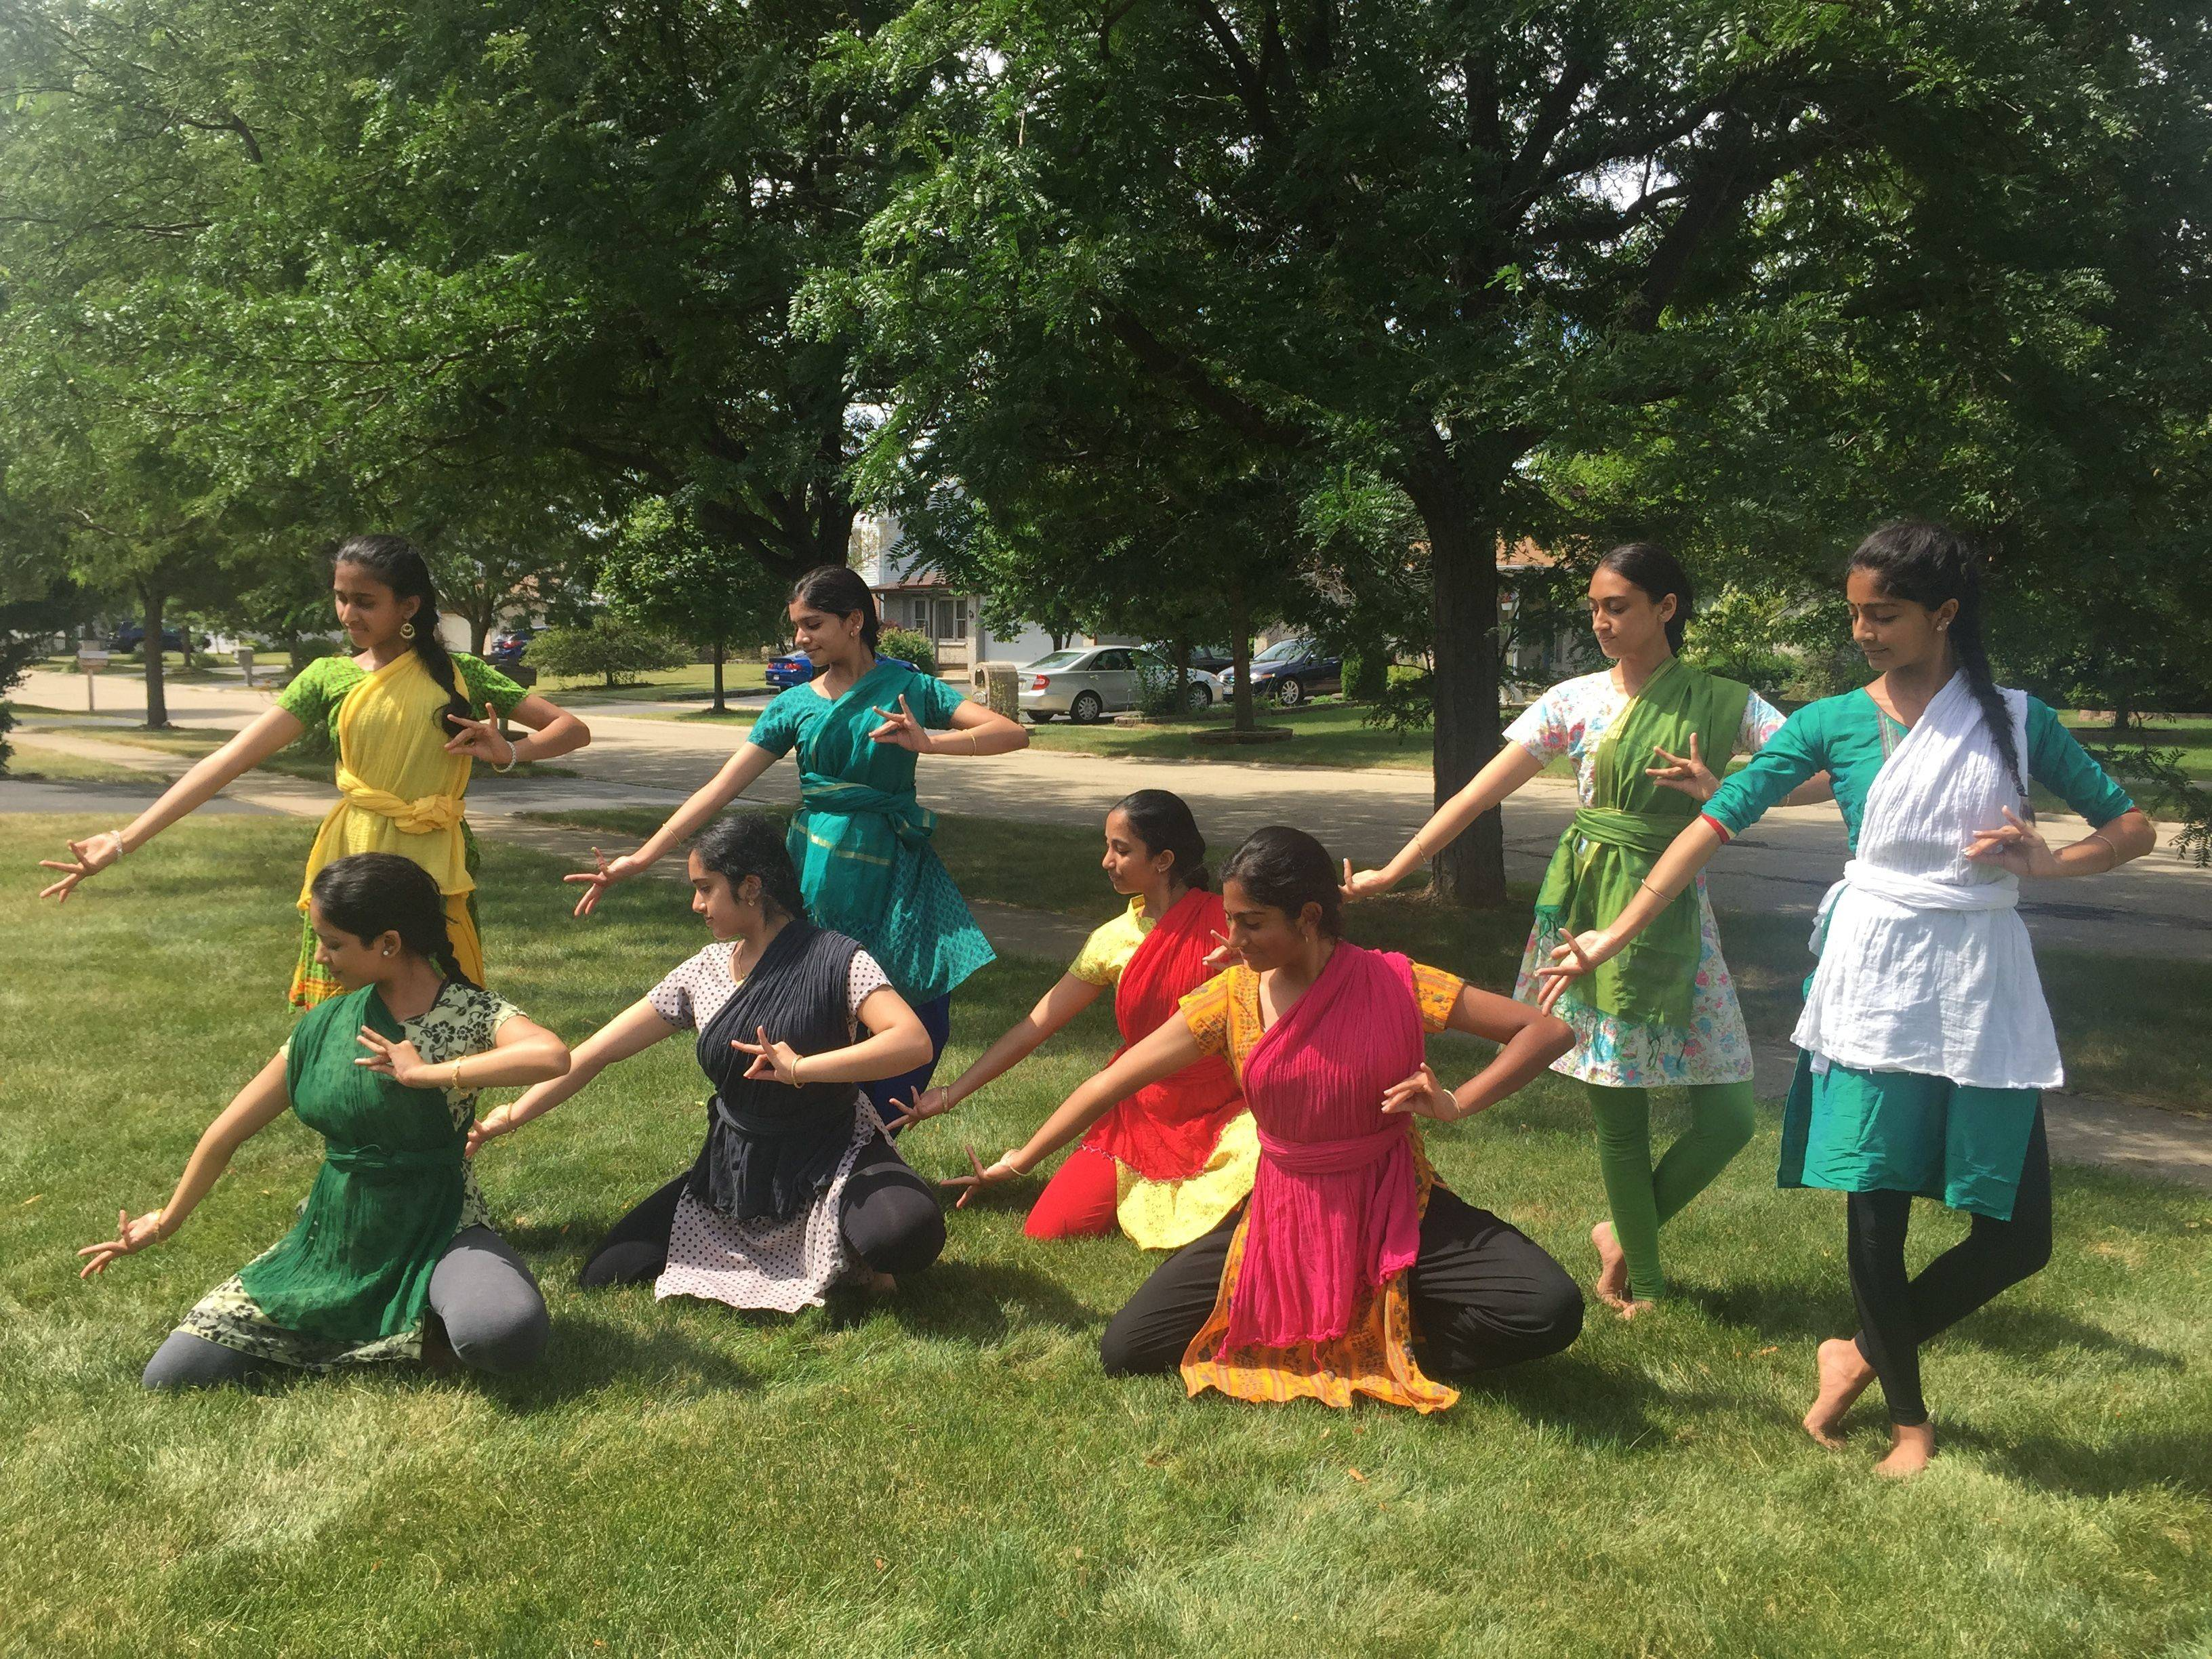 Naperville parade to mark India's independence